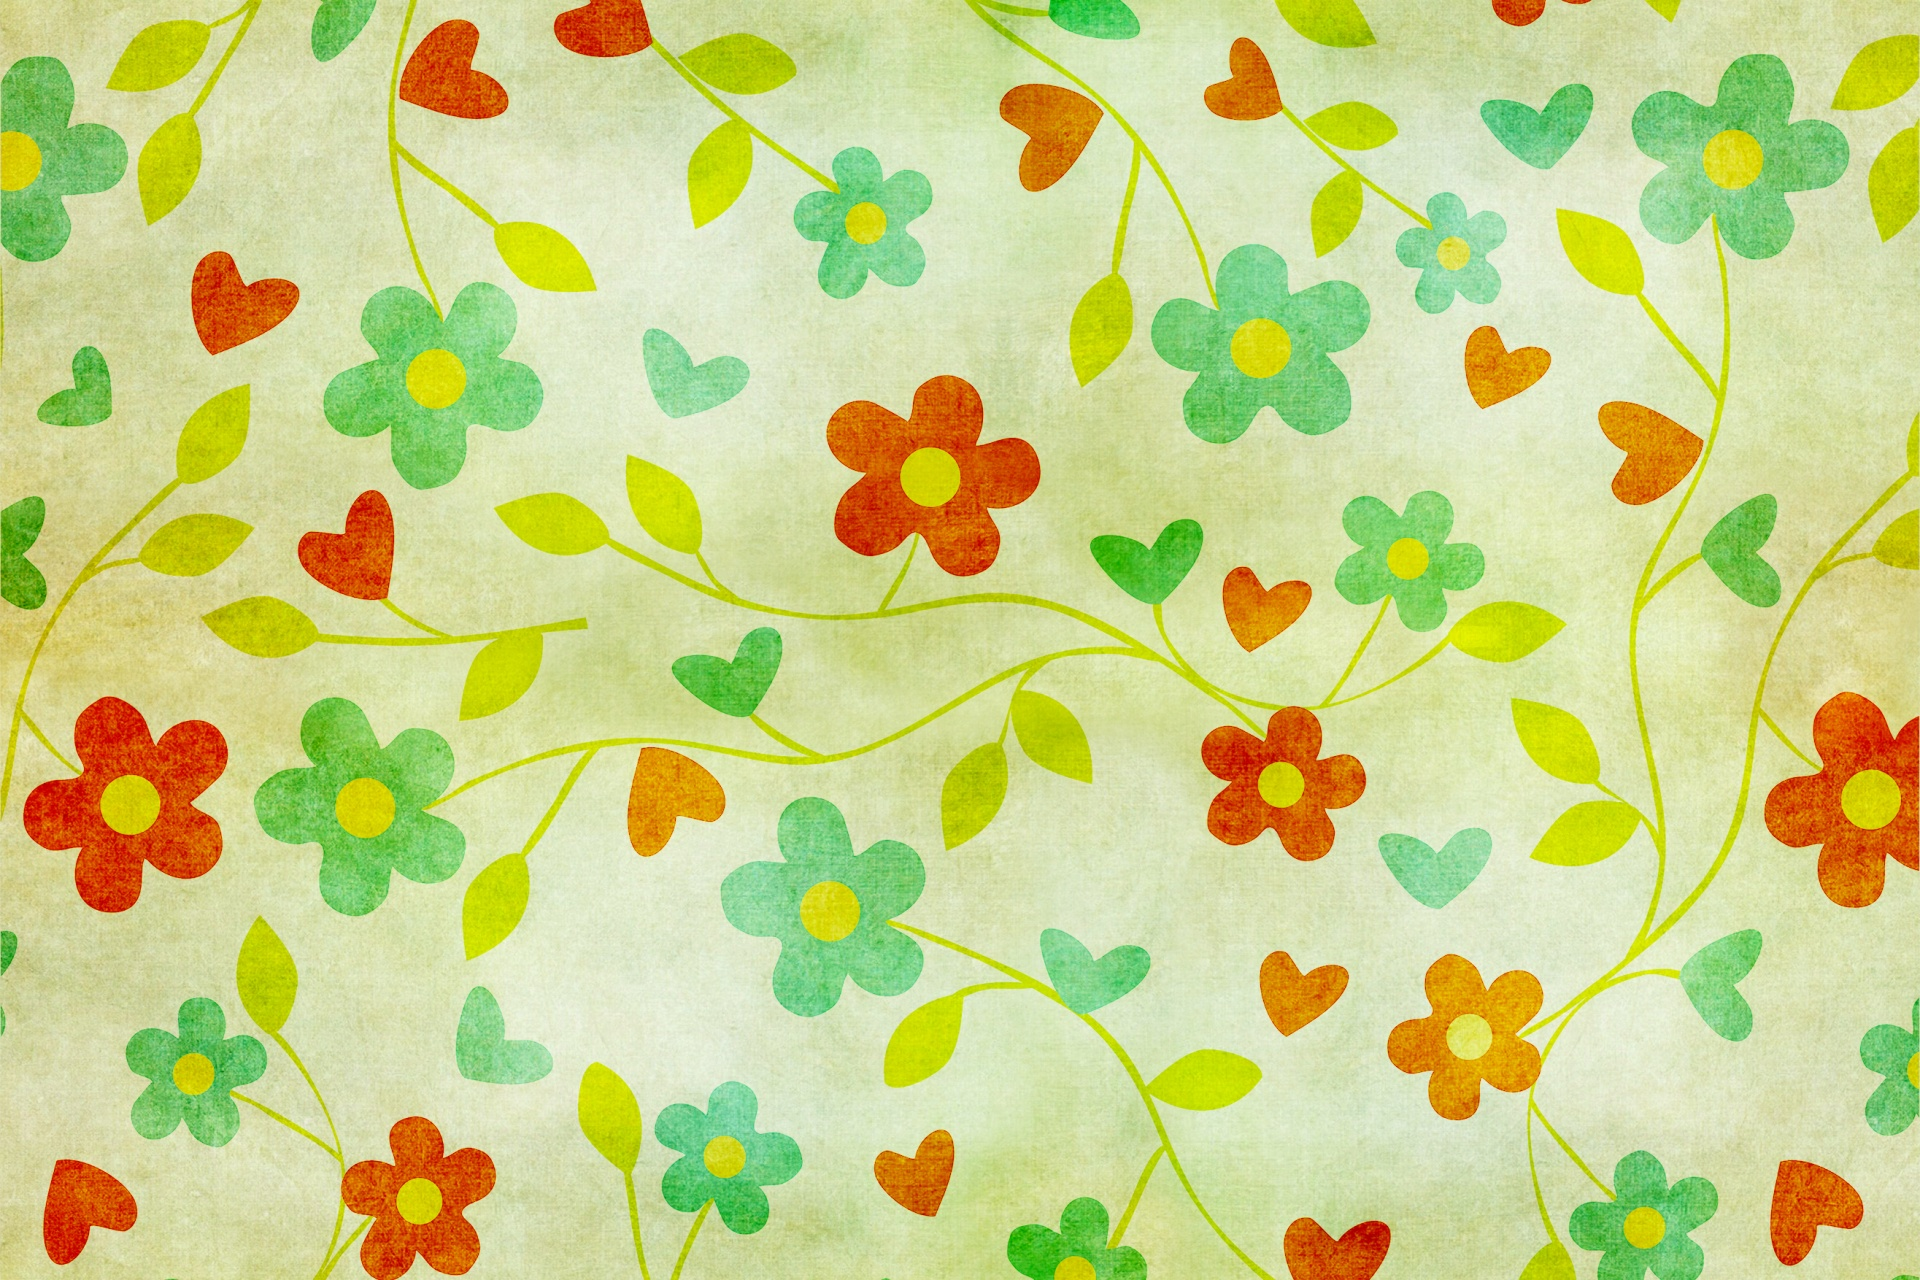 Floral Vintage Wallpaper Paper Background Free Image From